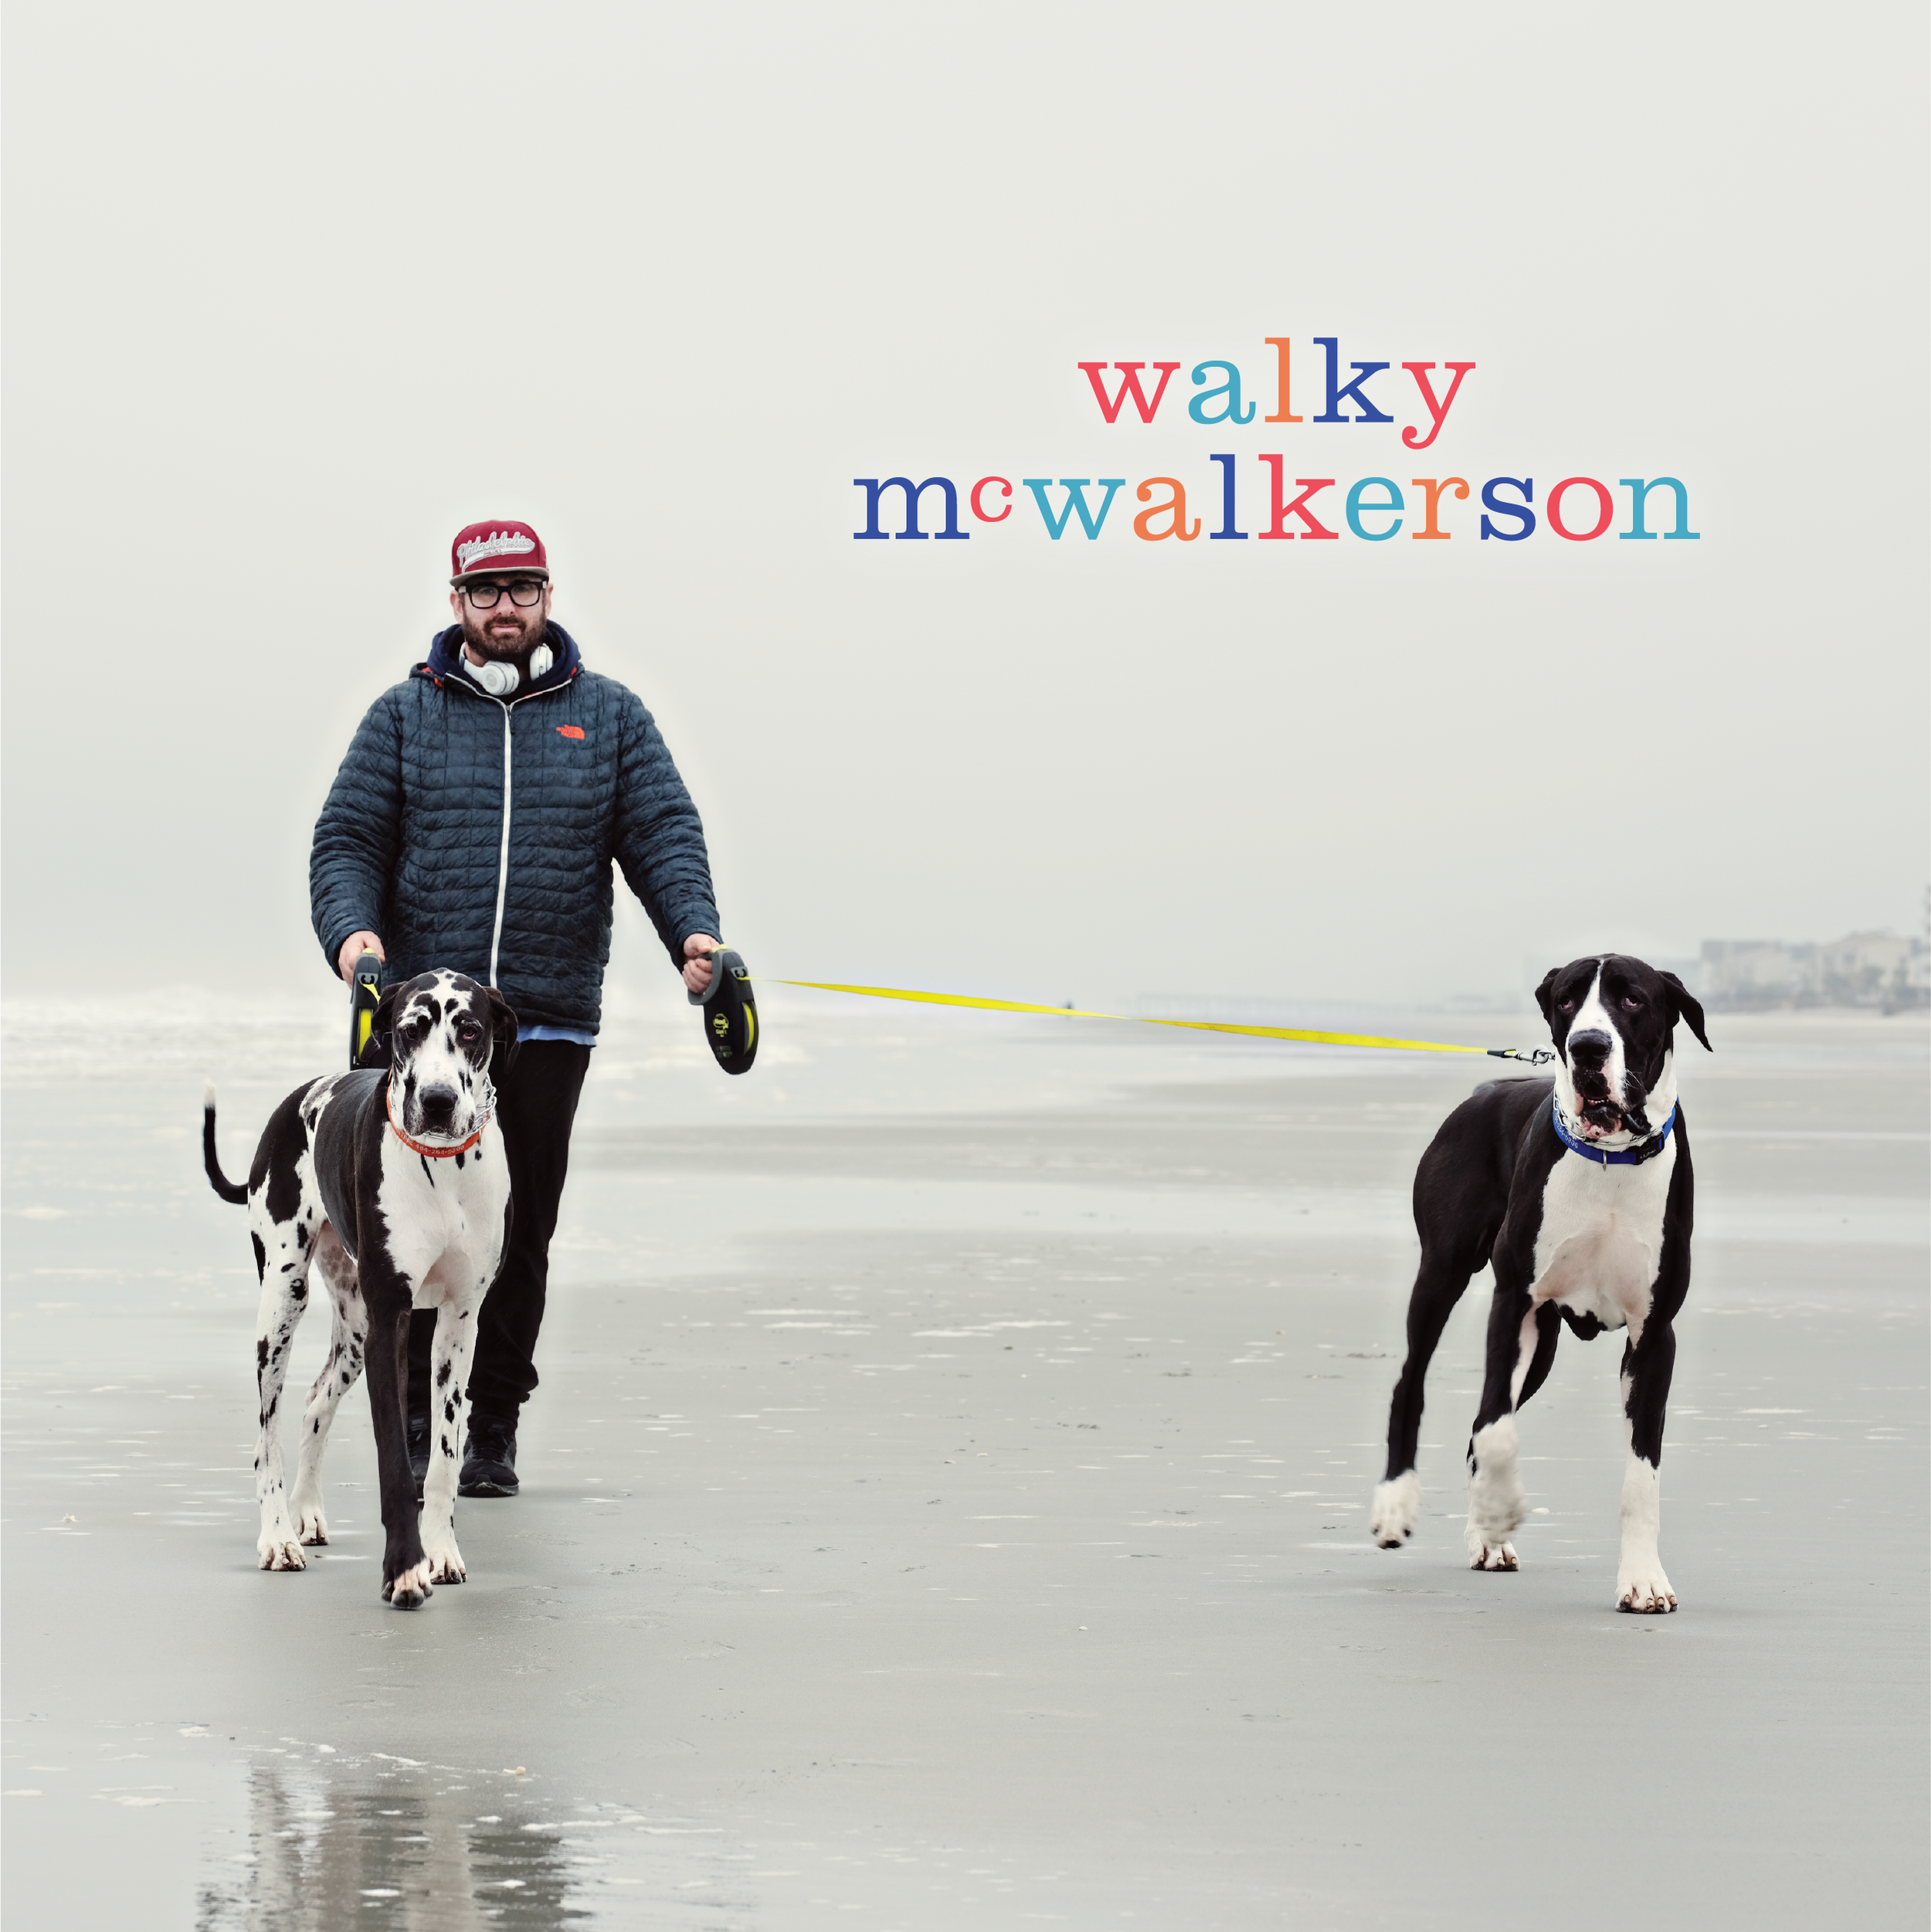 walky_mcwalkerson_logo_curiousandco_Artboard 2.png